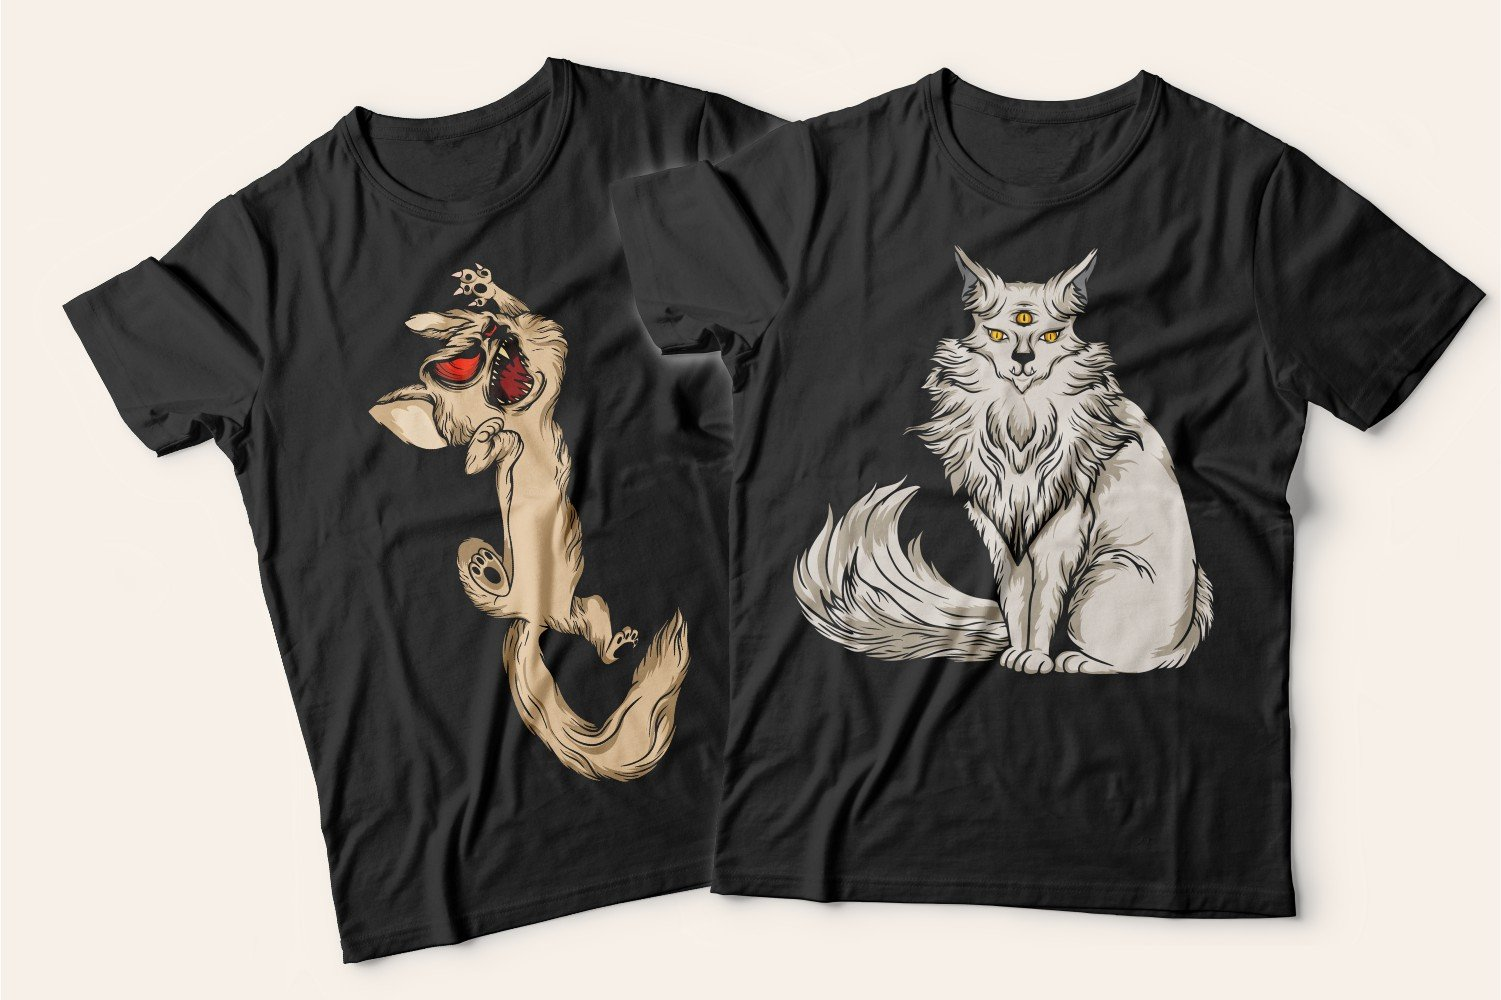 Two black T-shirts with cats: one with a beige angry kitten, the other with a peaceful three-eyed cat.